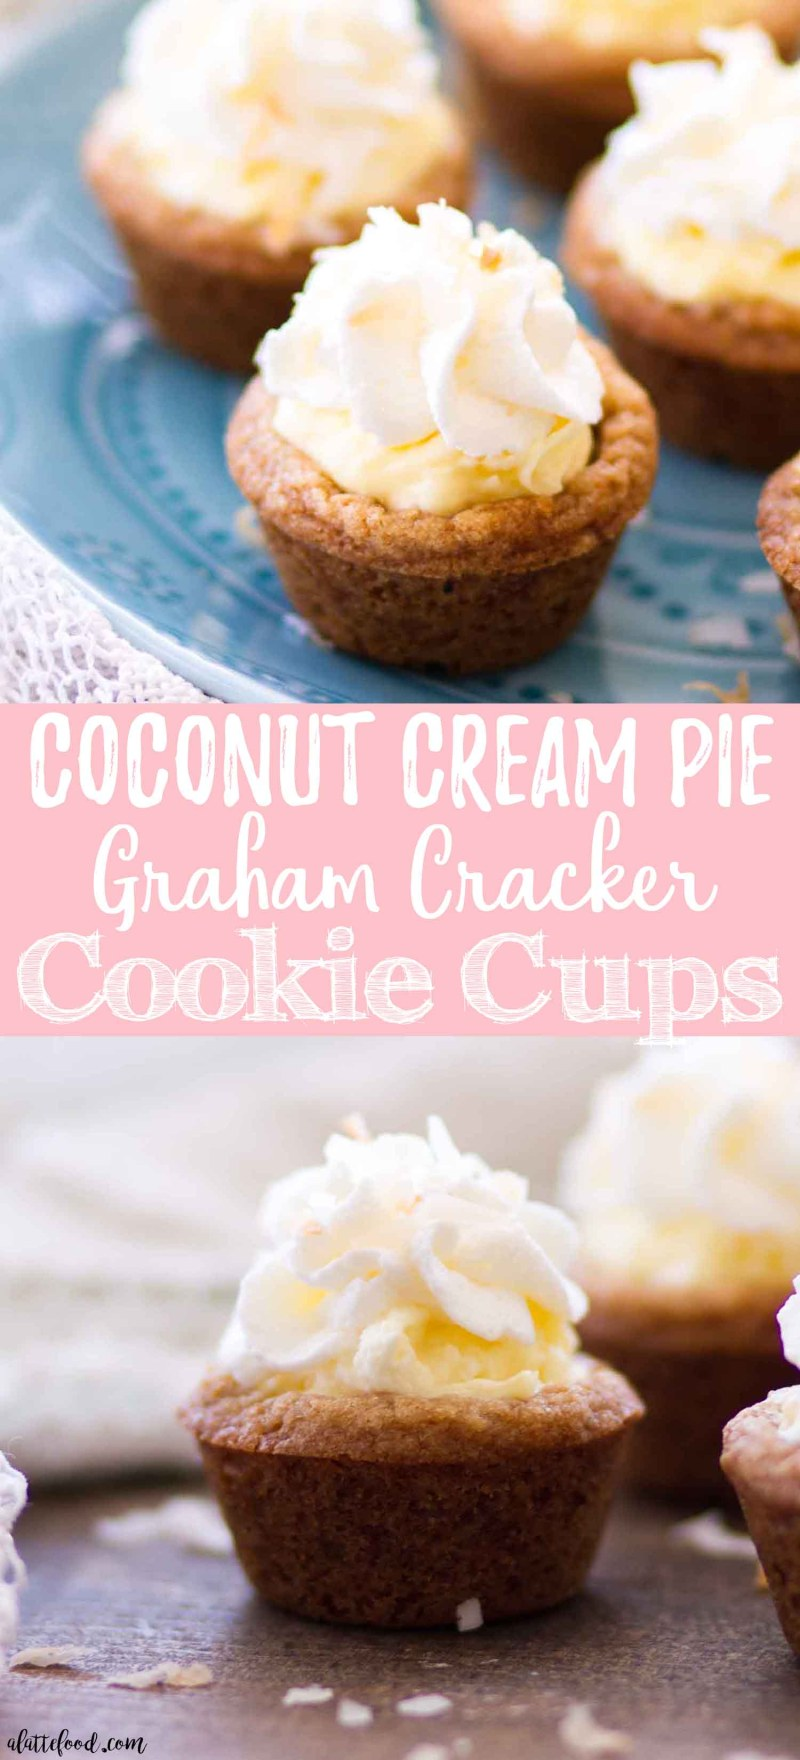 This Homemade Coconut Cream Pie Cookie Cups Recipe is a combination of a graham cracker cookie crust (think homemade chocolate chip cookie dough + graham cracker crumbs minus the chocolate chips) and no bake coconut cream pie filling. This easy summer dessert is a total crowd pleaser! And a step-by-step video!